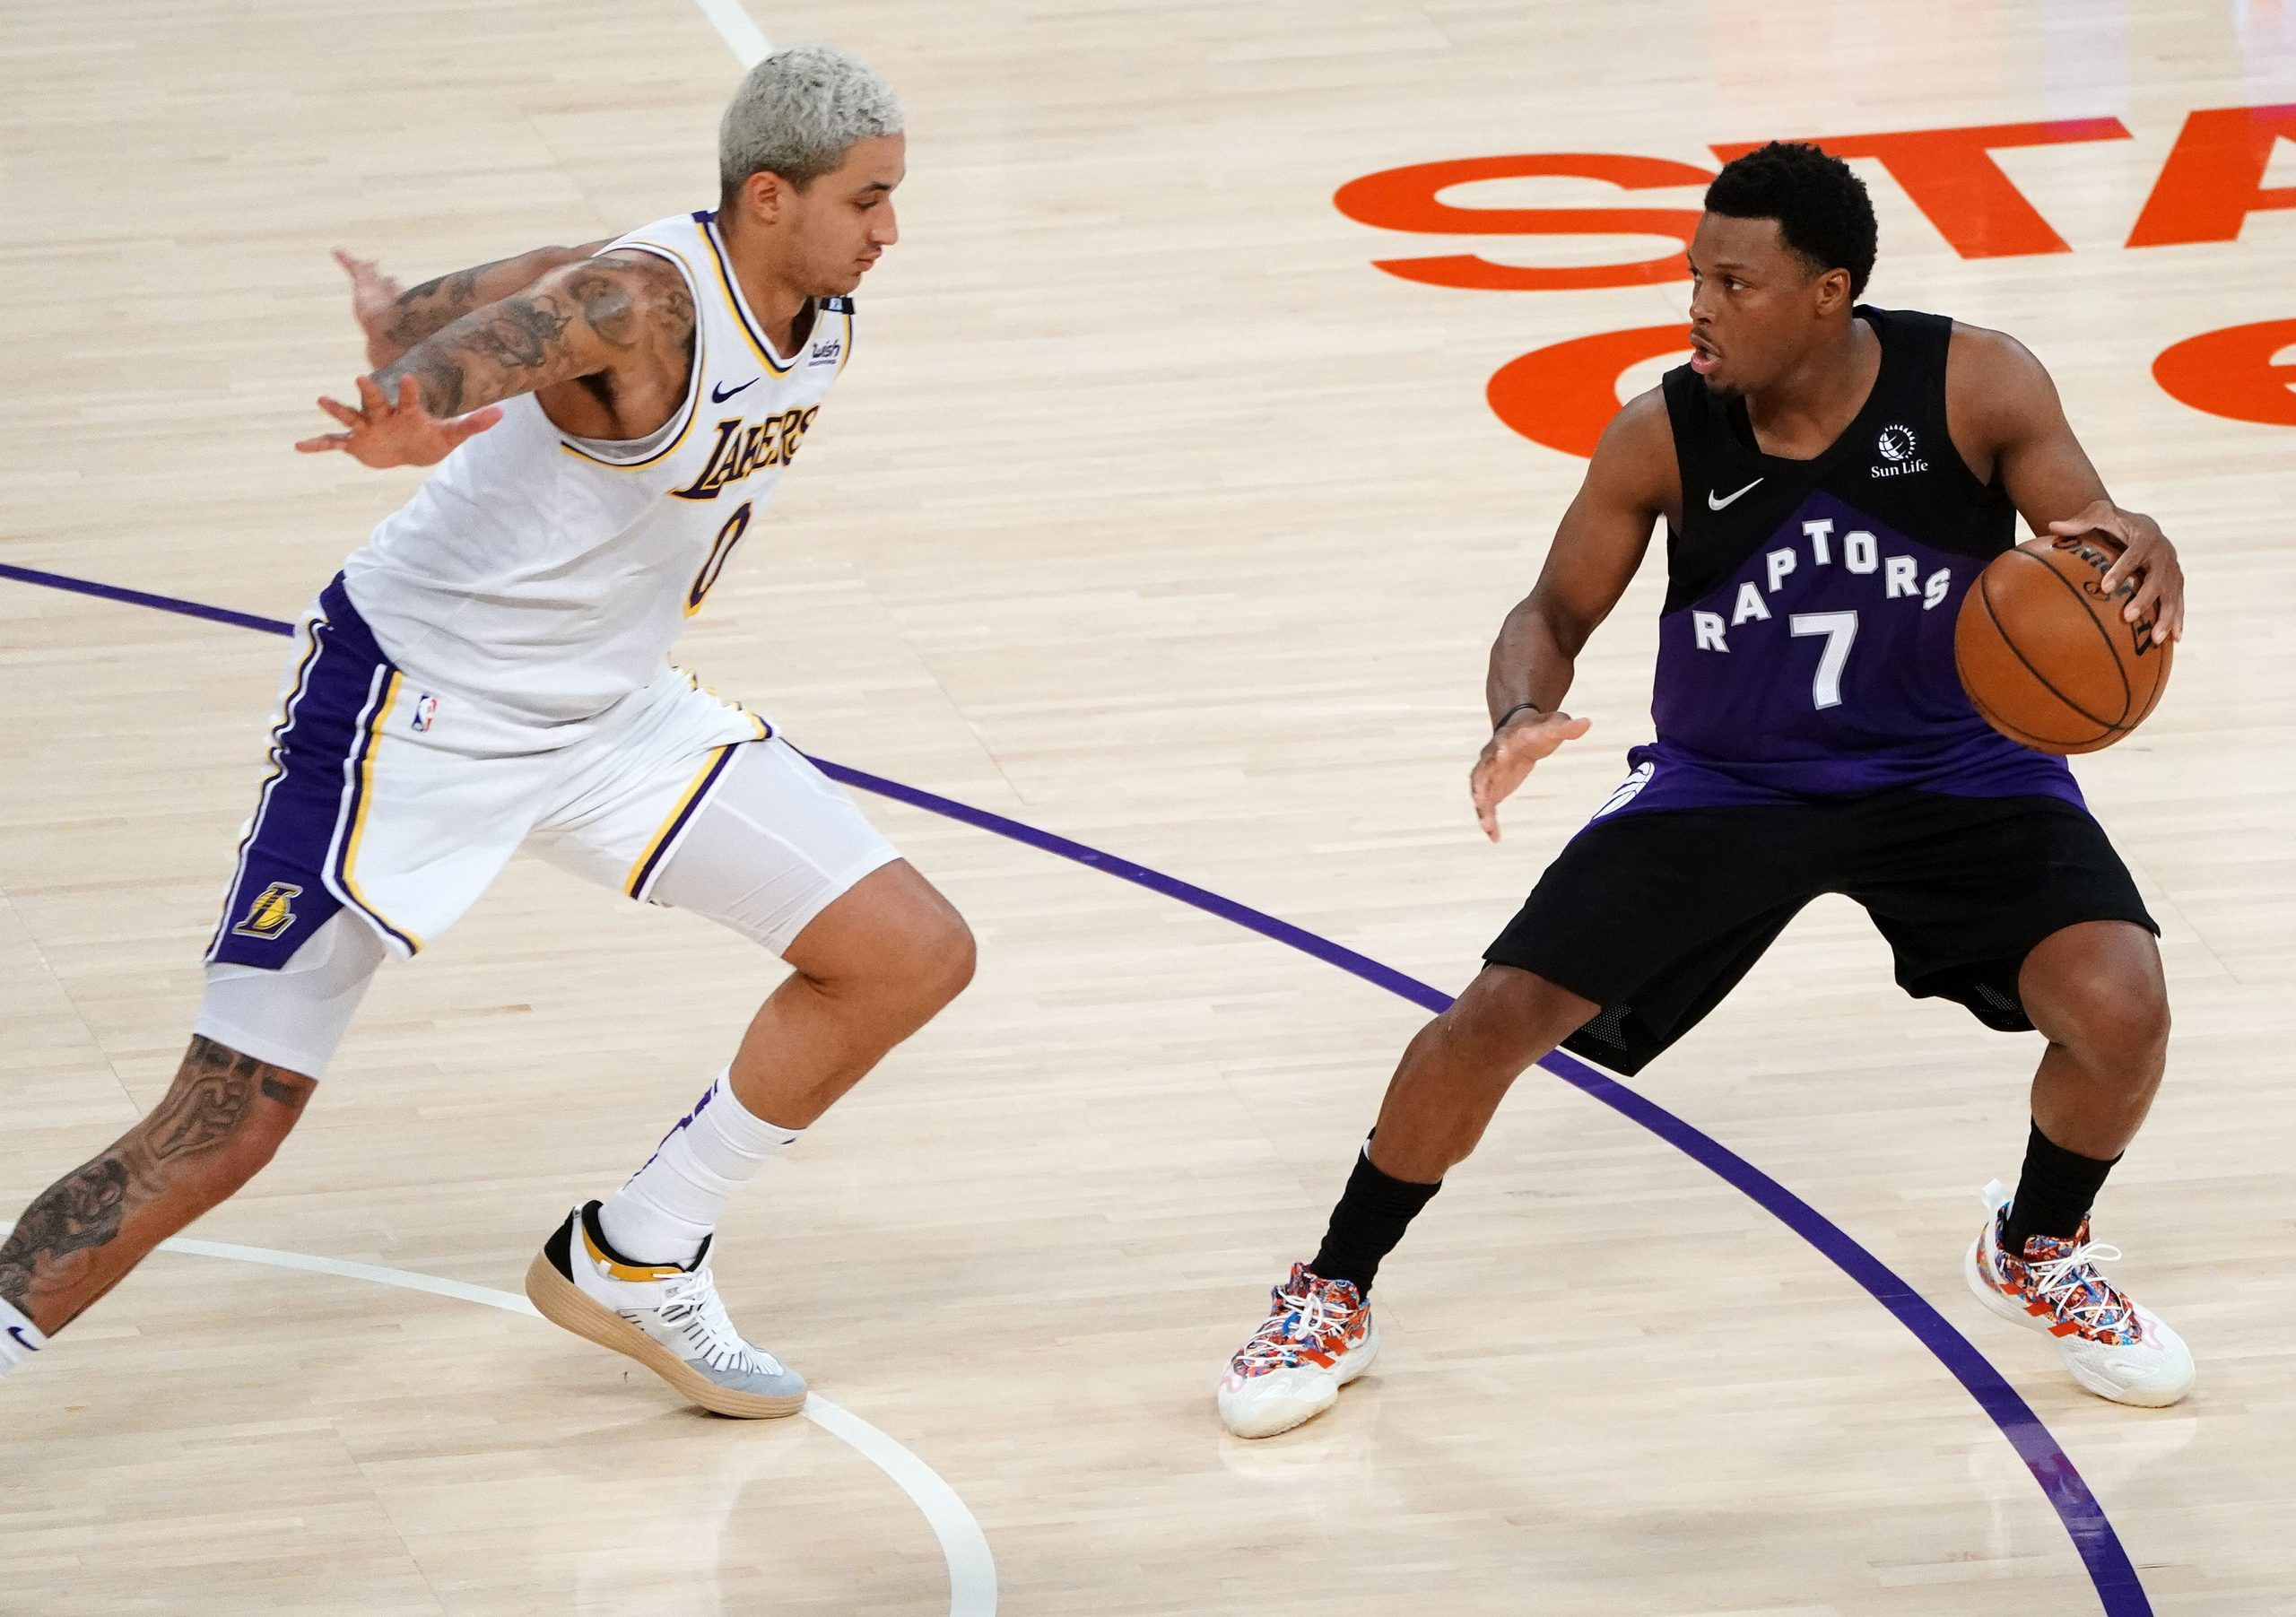 Toronto Raptors guard Kyle Lowry (7) controls the ball against Los Angeles Lakers forward Kyle Kuzma (0) during the second half at Staples Center May 2, 2021.